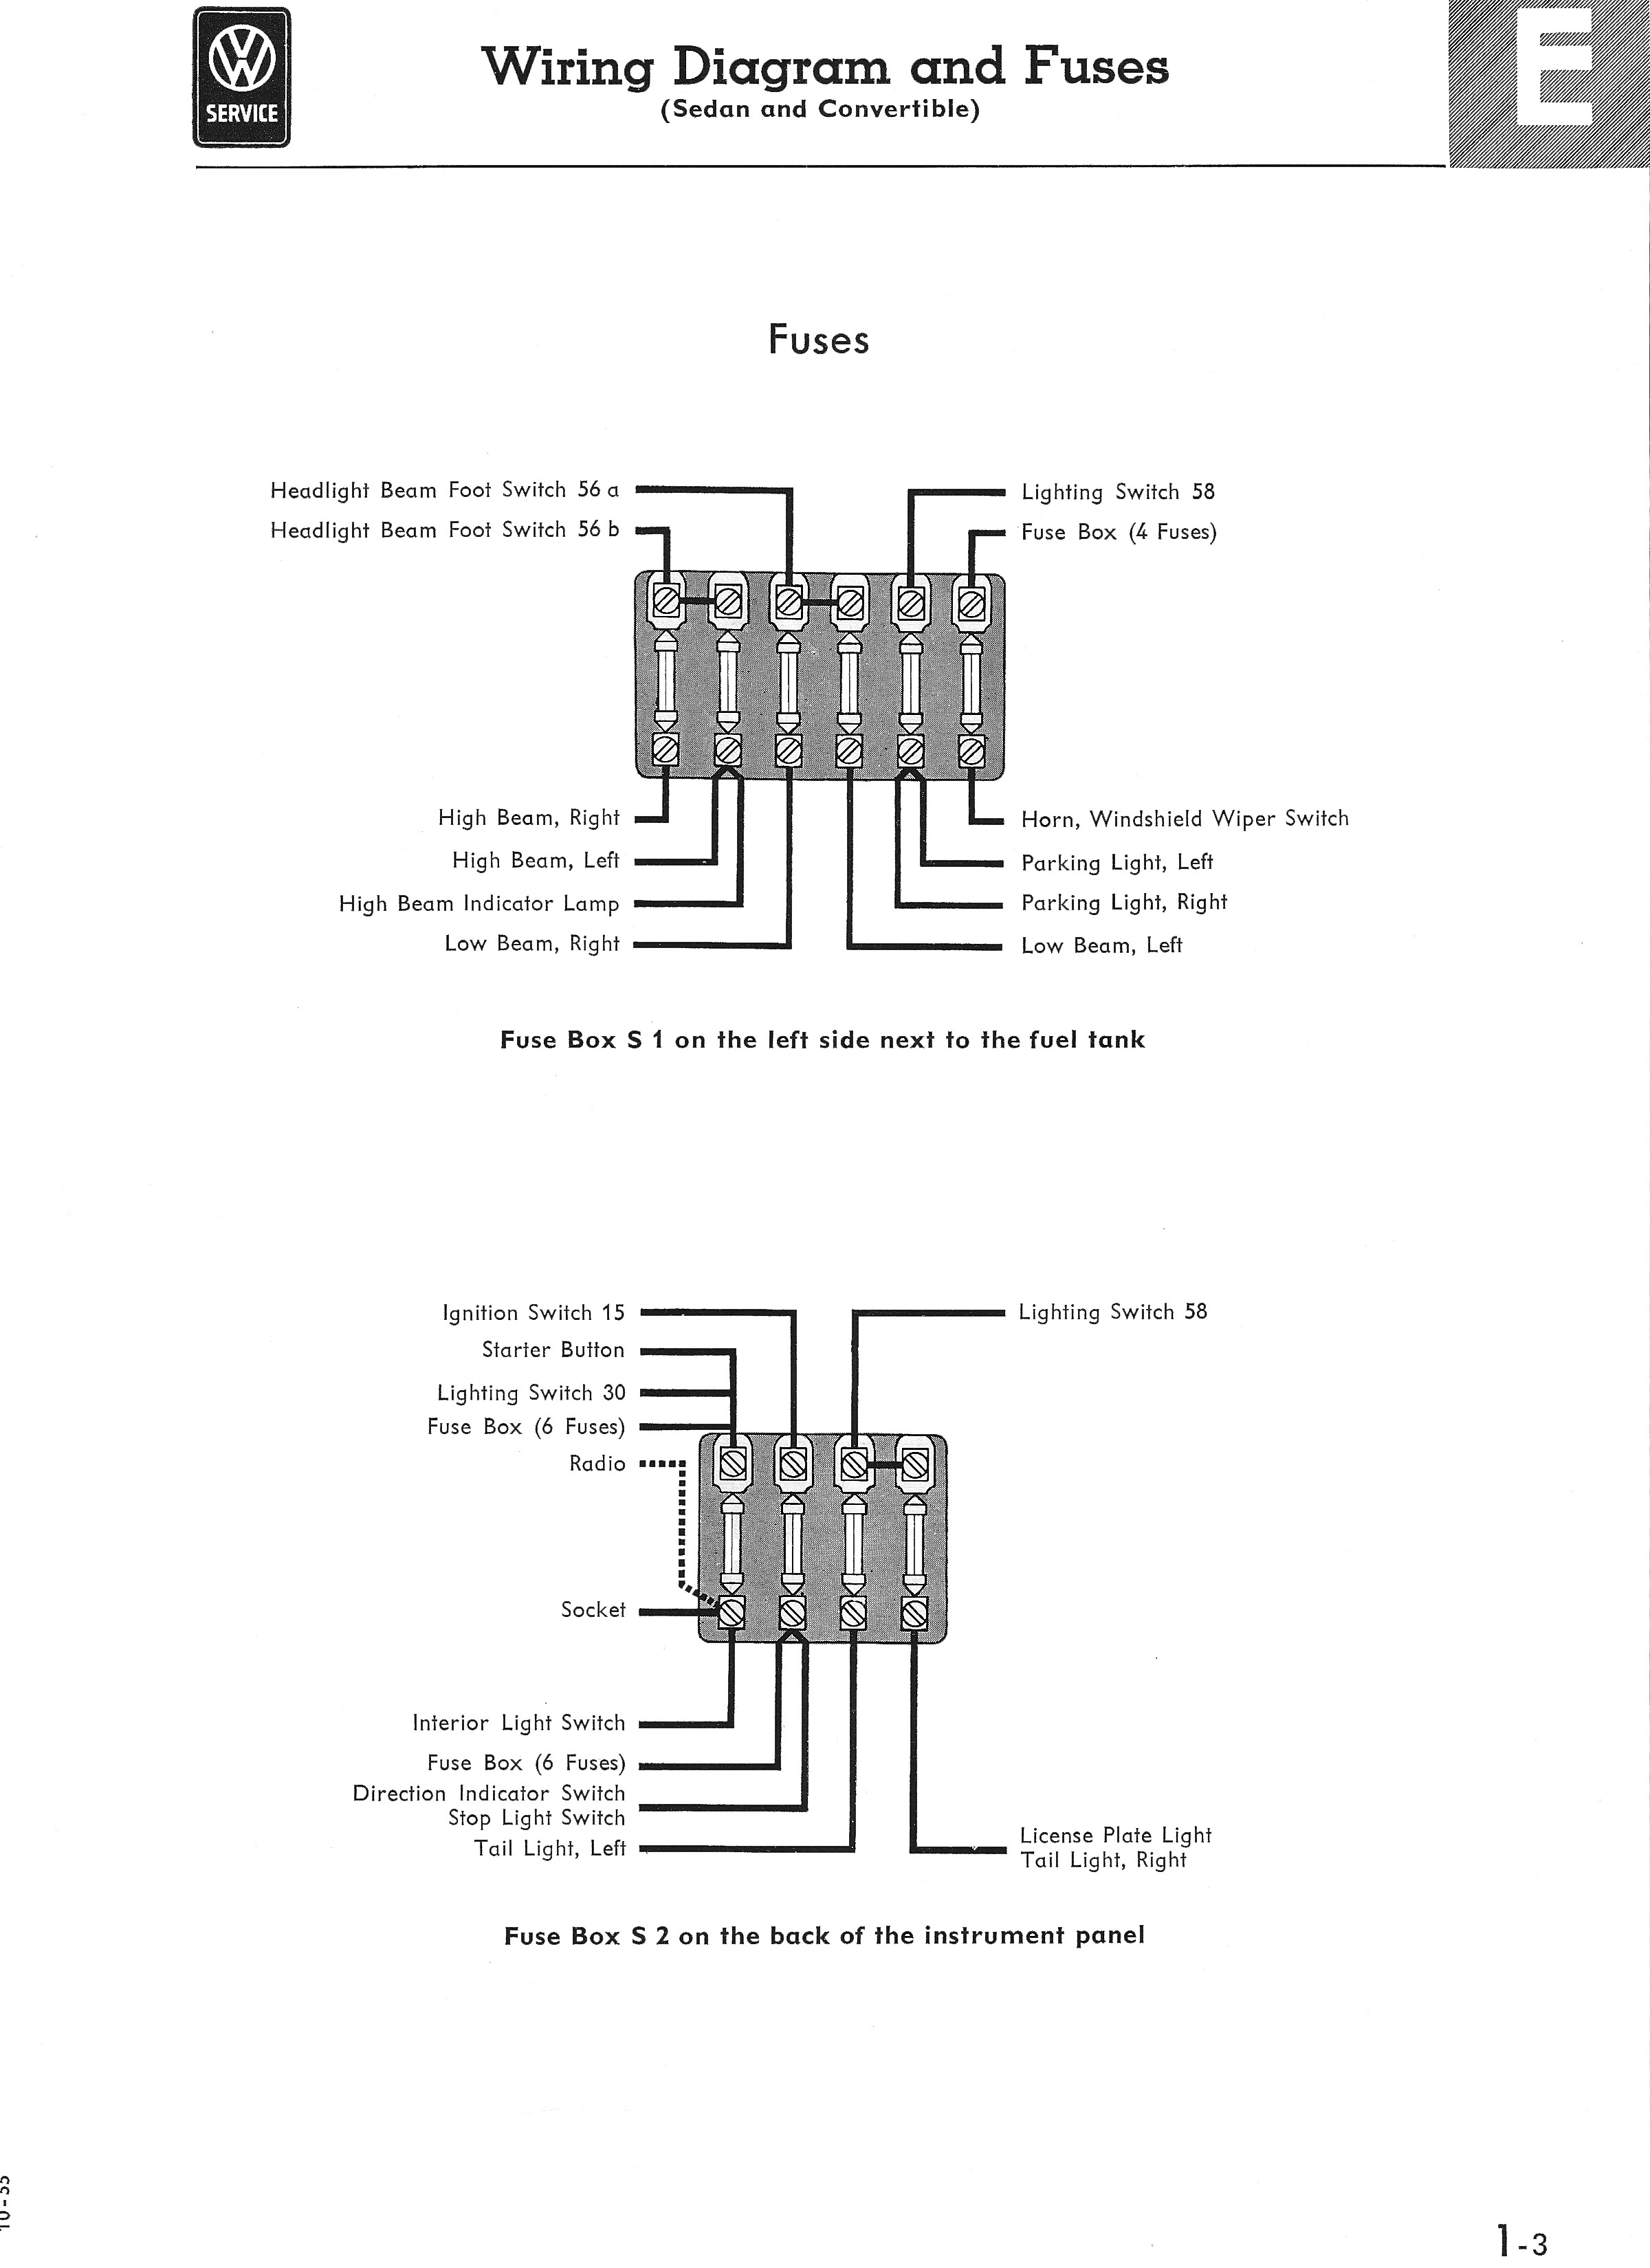 Type 1 Wiring Diagrams 300 Amp Service Panel Diagram